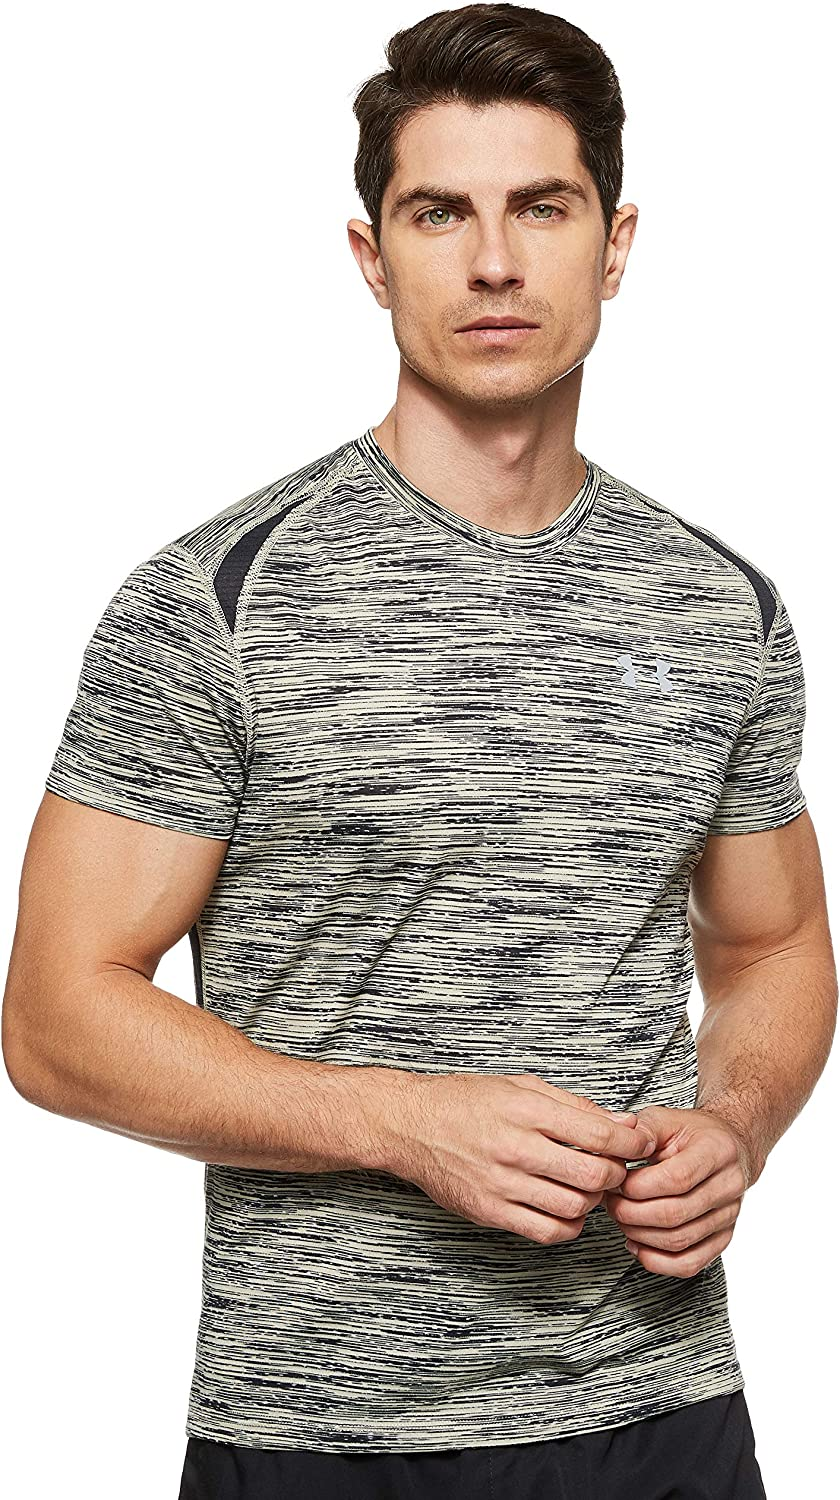 Under Armour Men's Streaker 2.0 It is very Fashionable popular T-Shirt Time Lapse Short-Sleeve